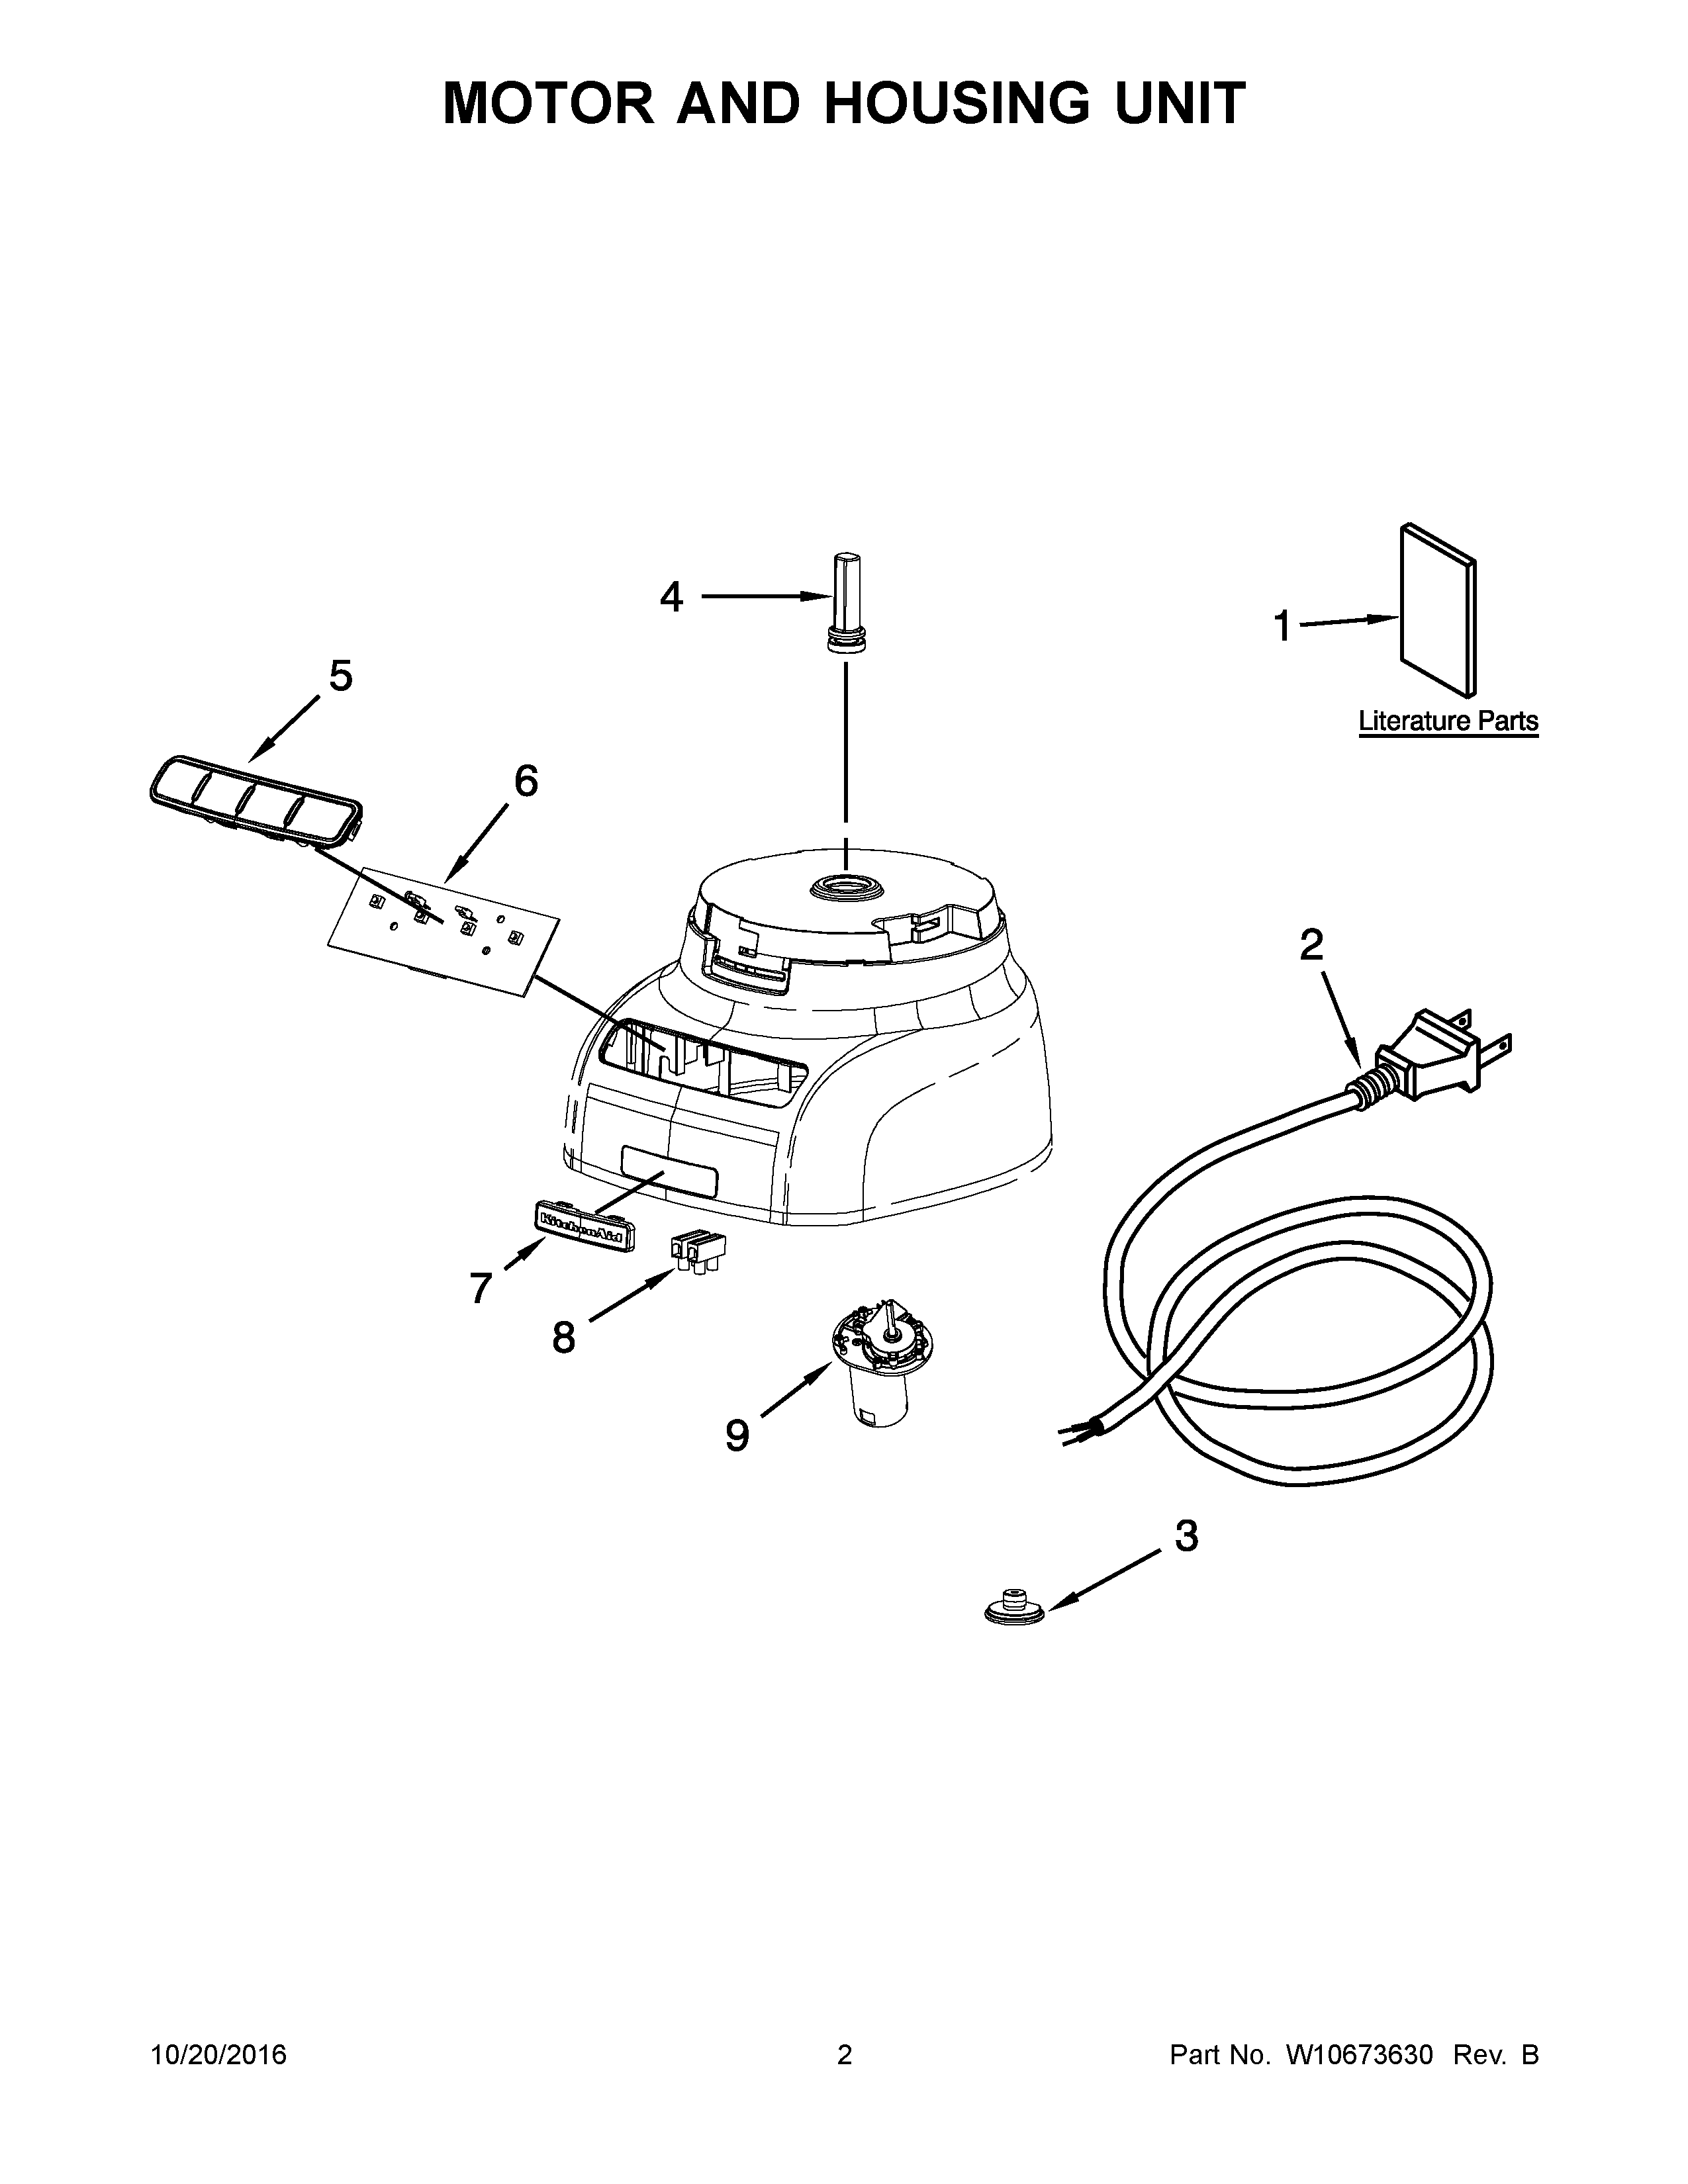 KitchenAid KFP0730QOB0 motor and housing unit diagram